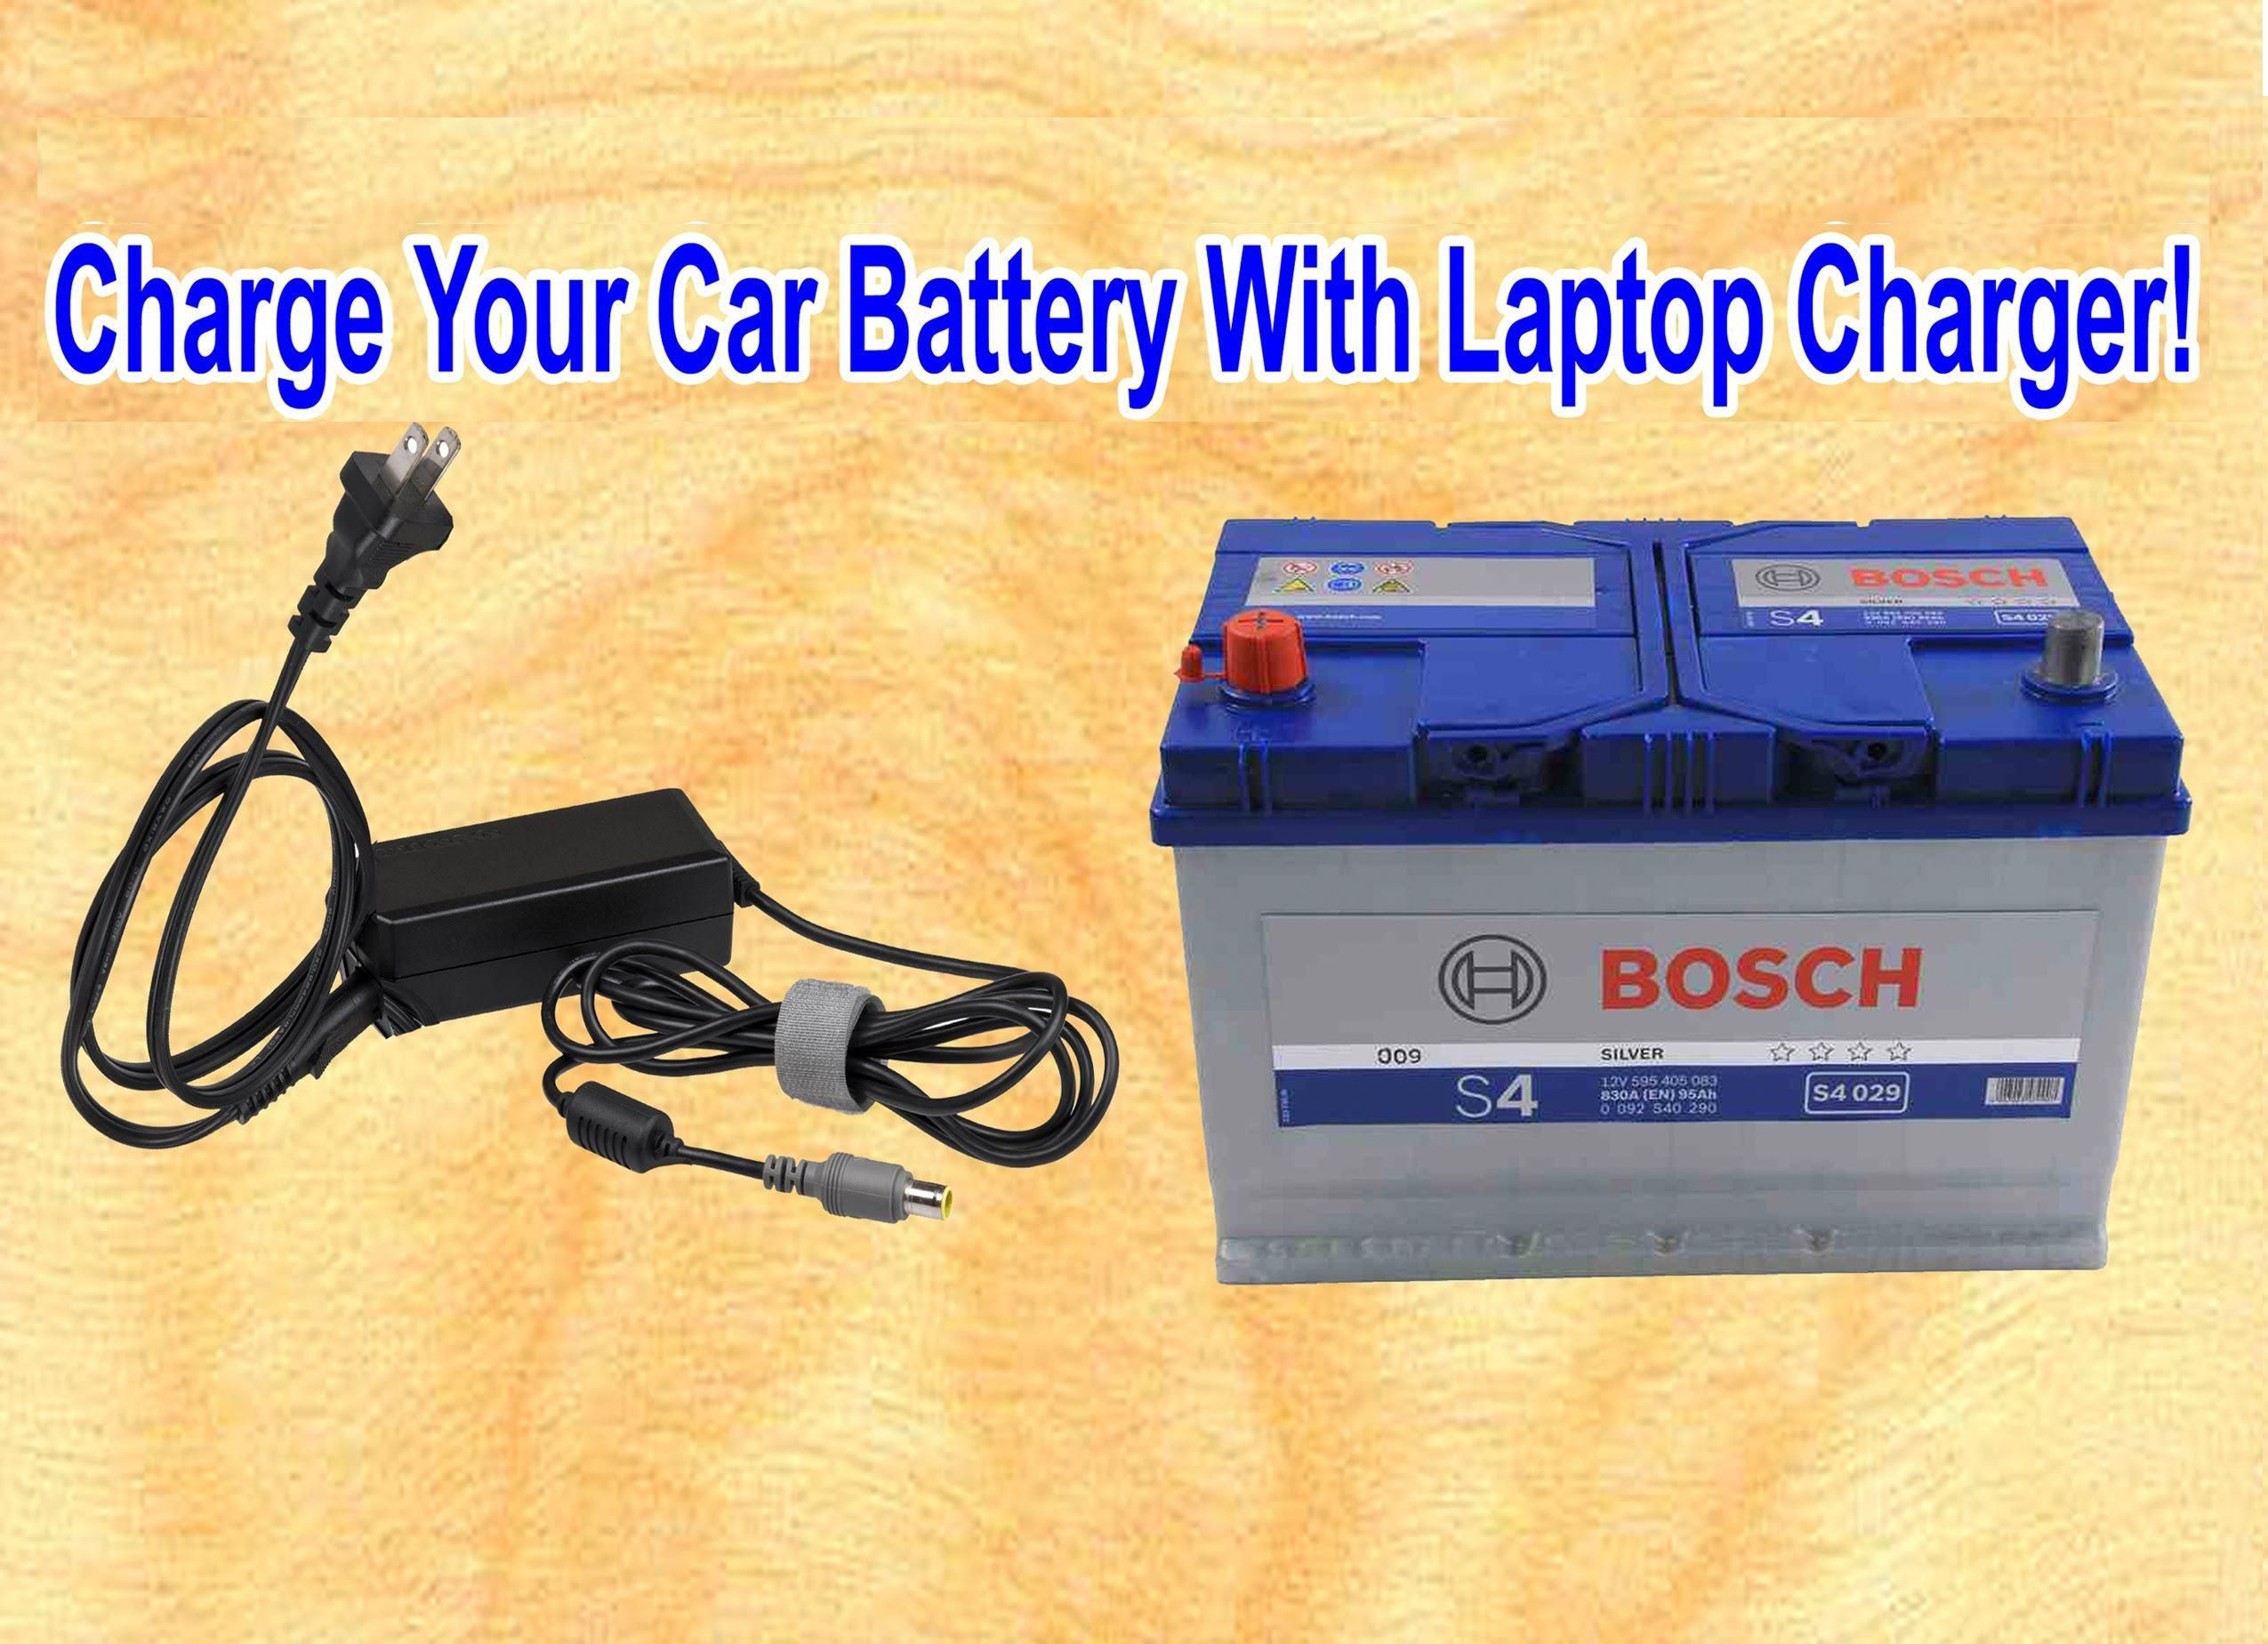 Battery reconditioning chemical